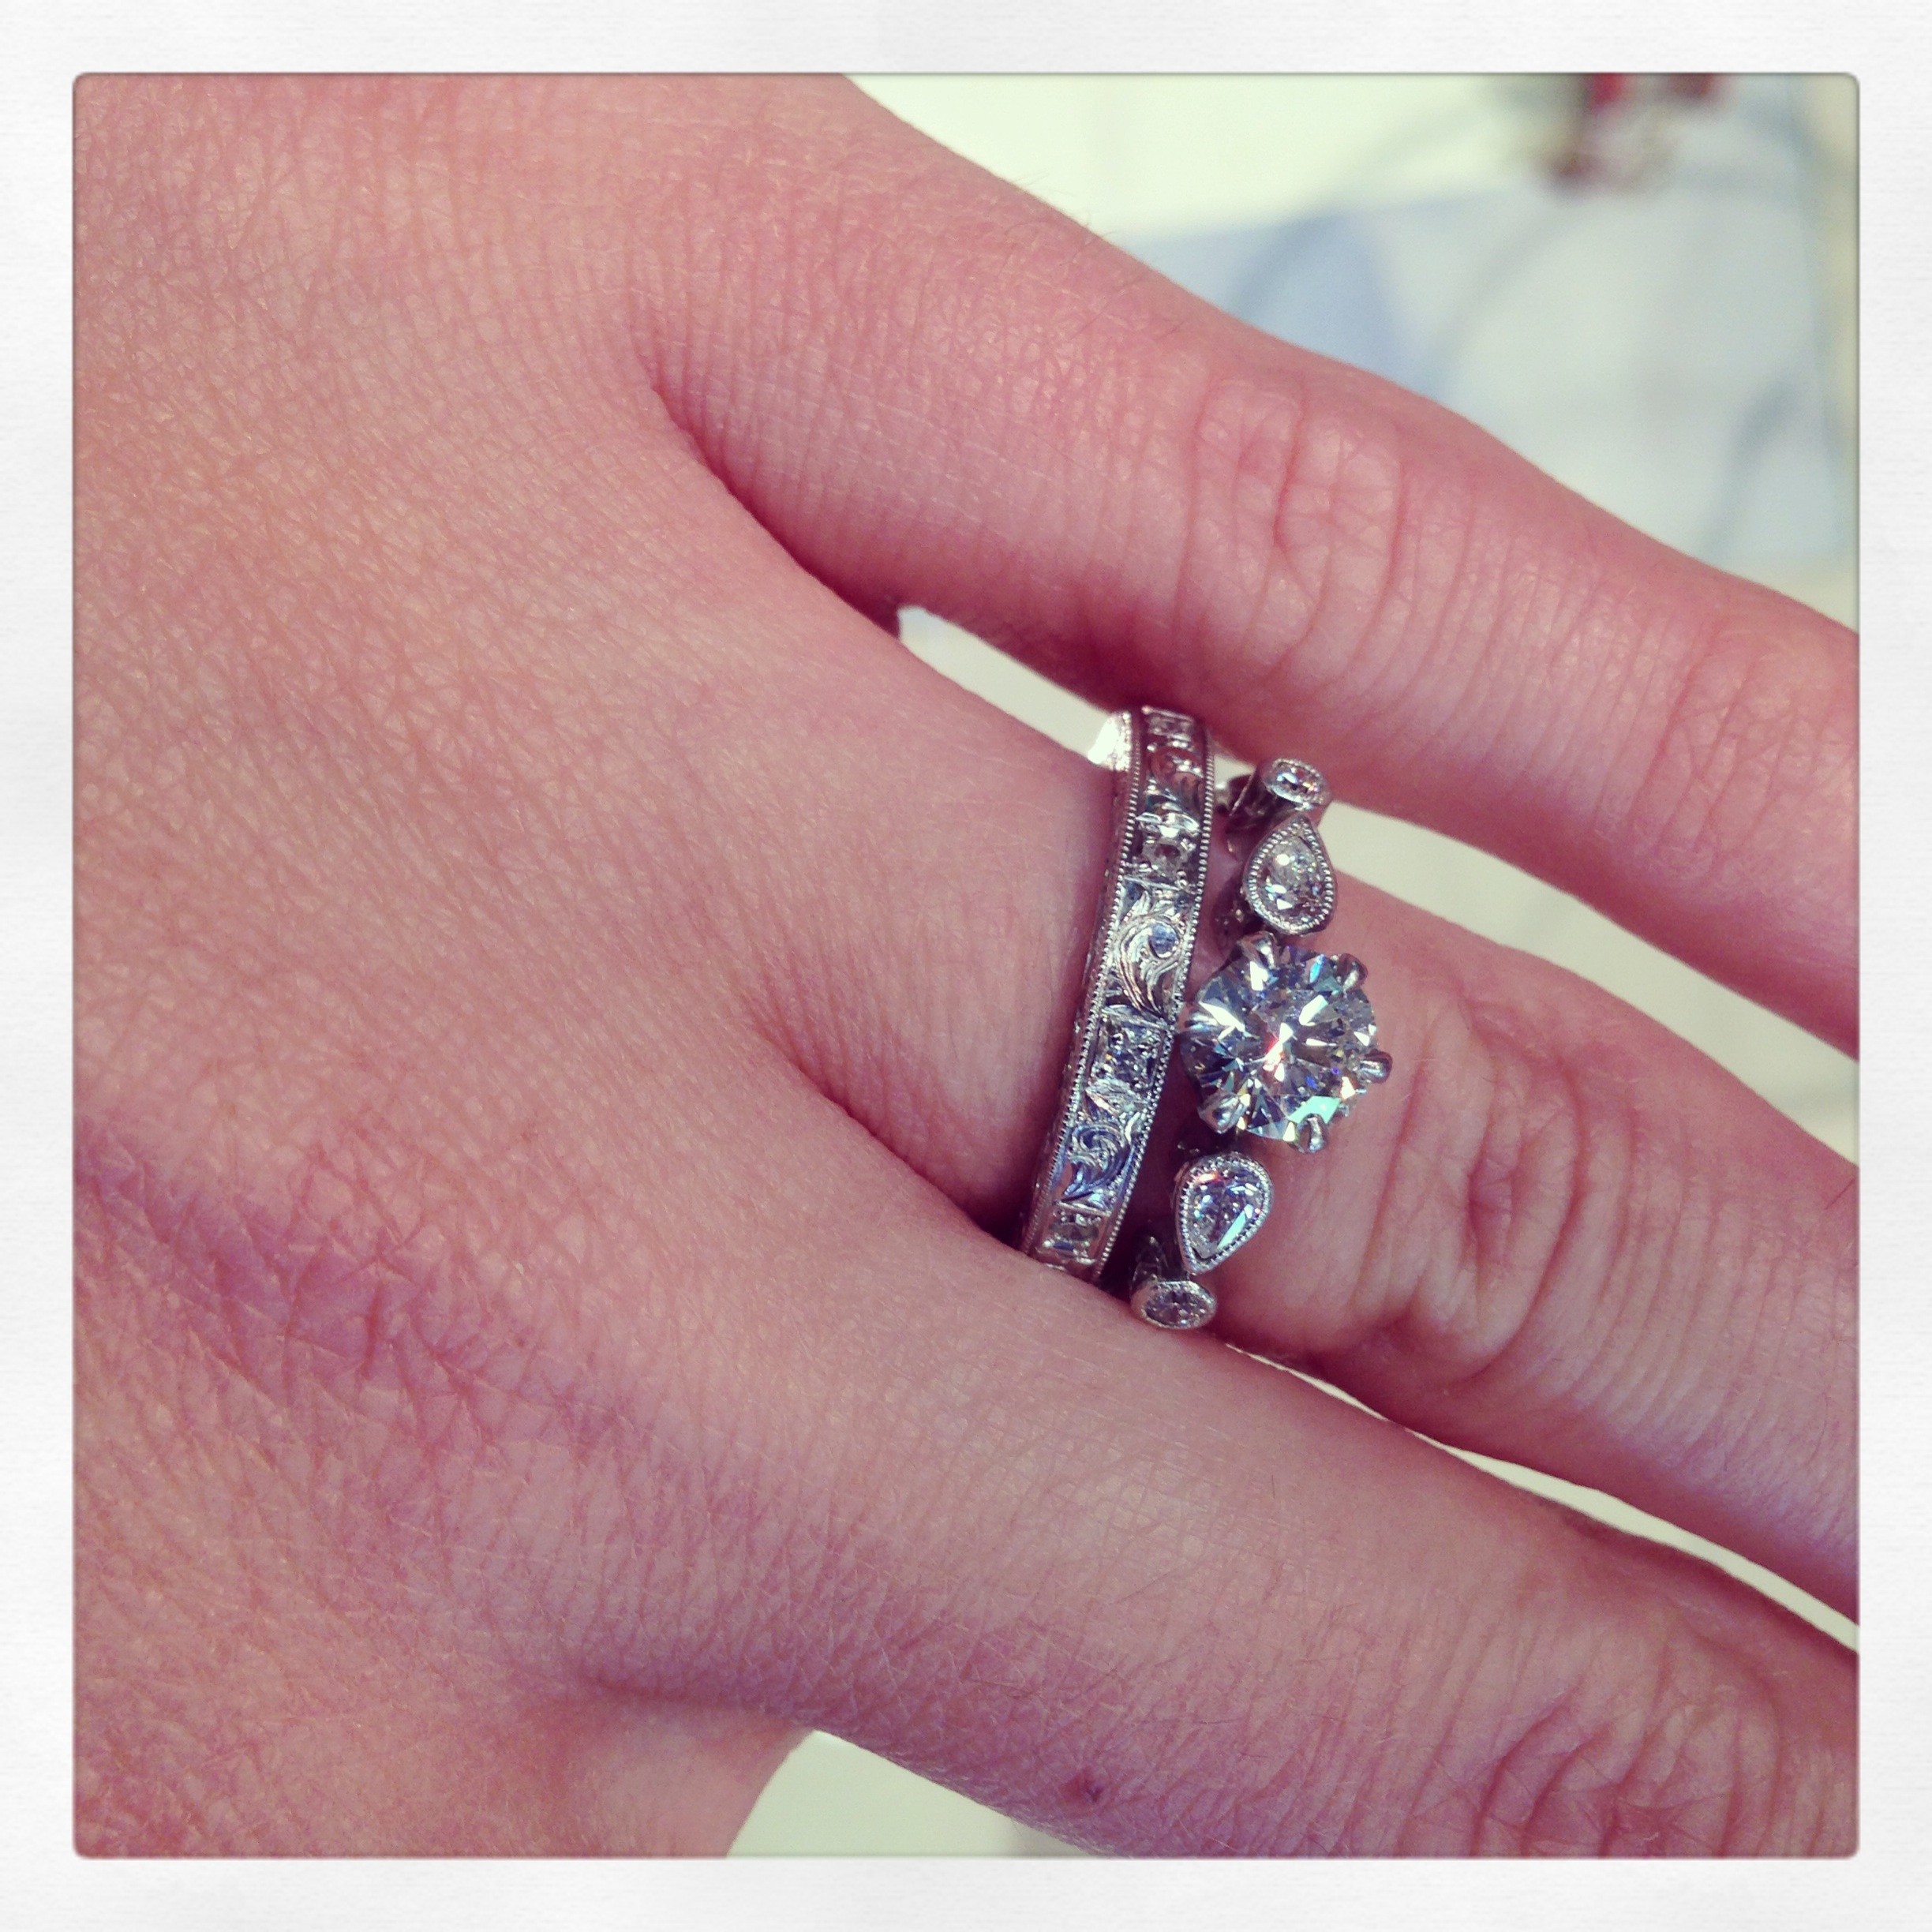 Cheap engagement ring for young: Do wedding and engagement rings ...